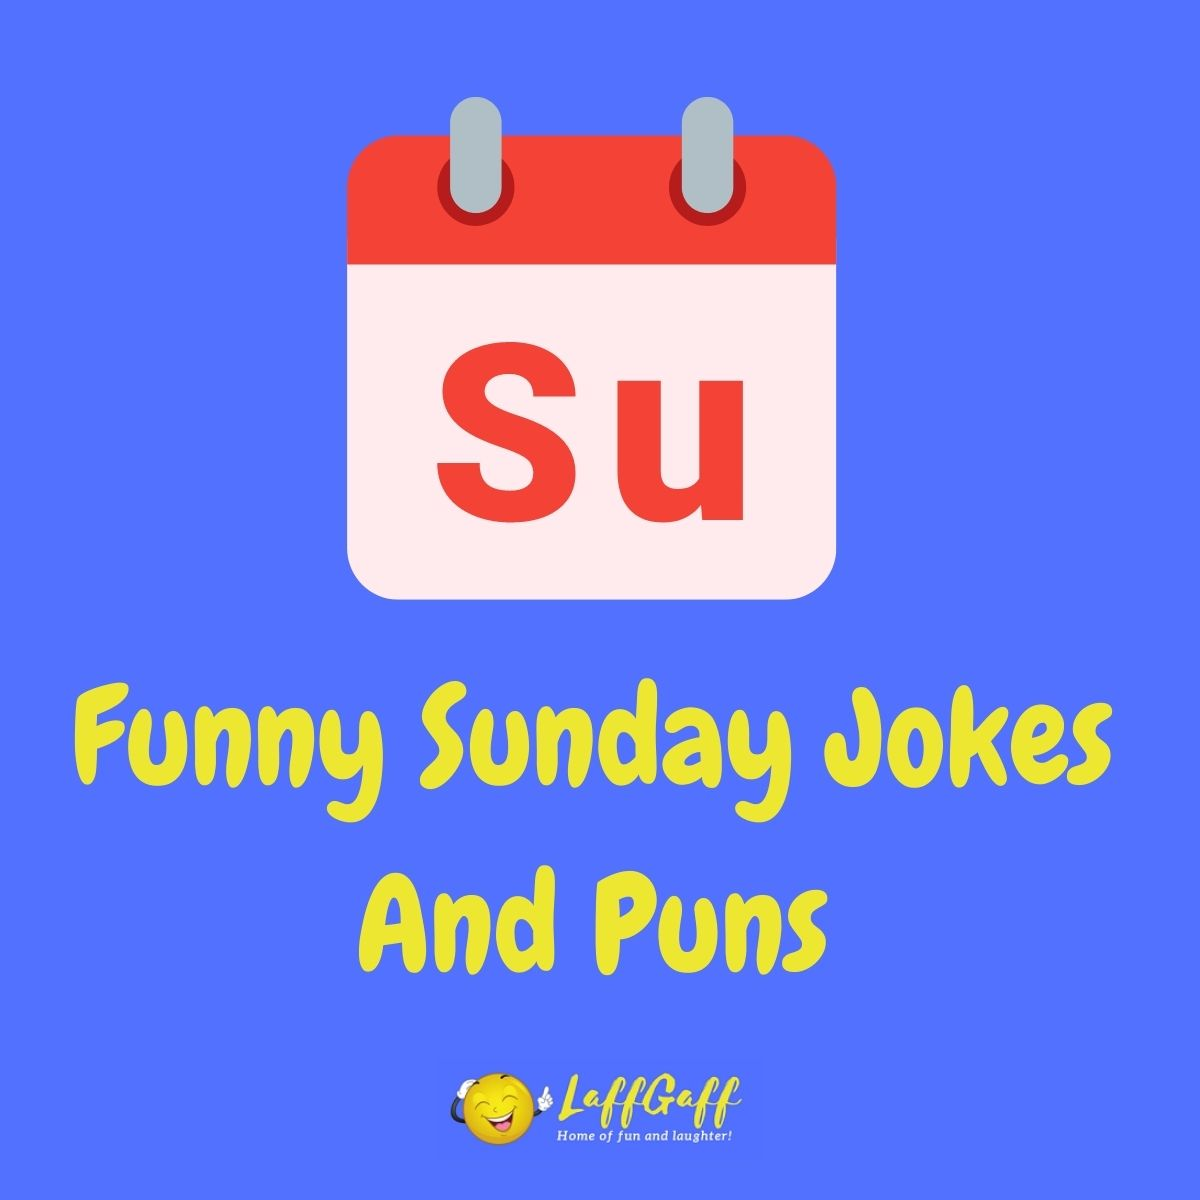 Featured image for a page of funny Sunday jokes and puns.